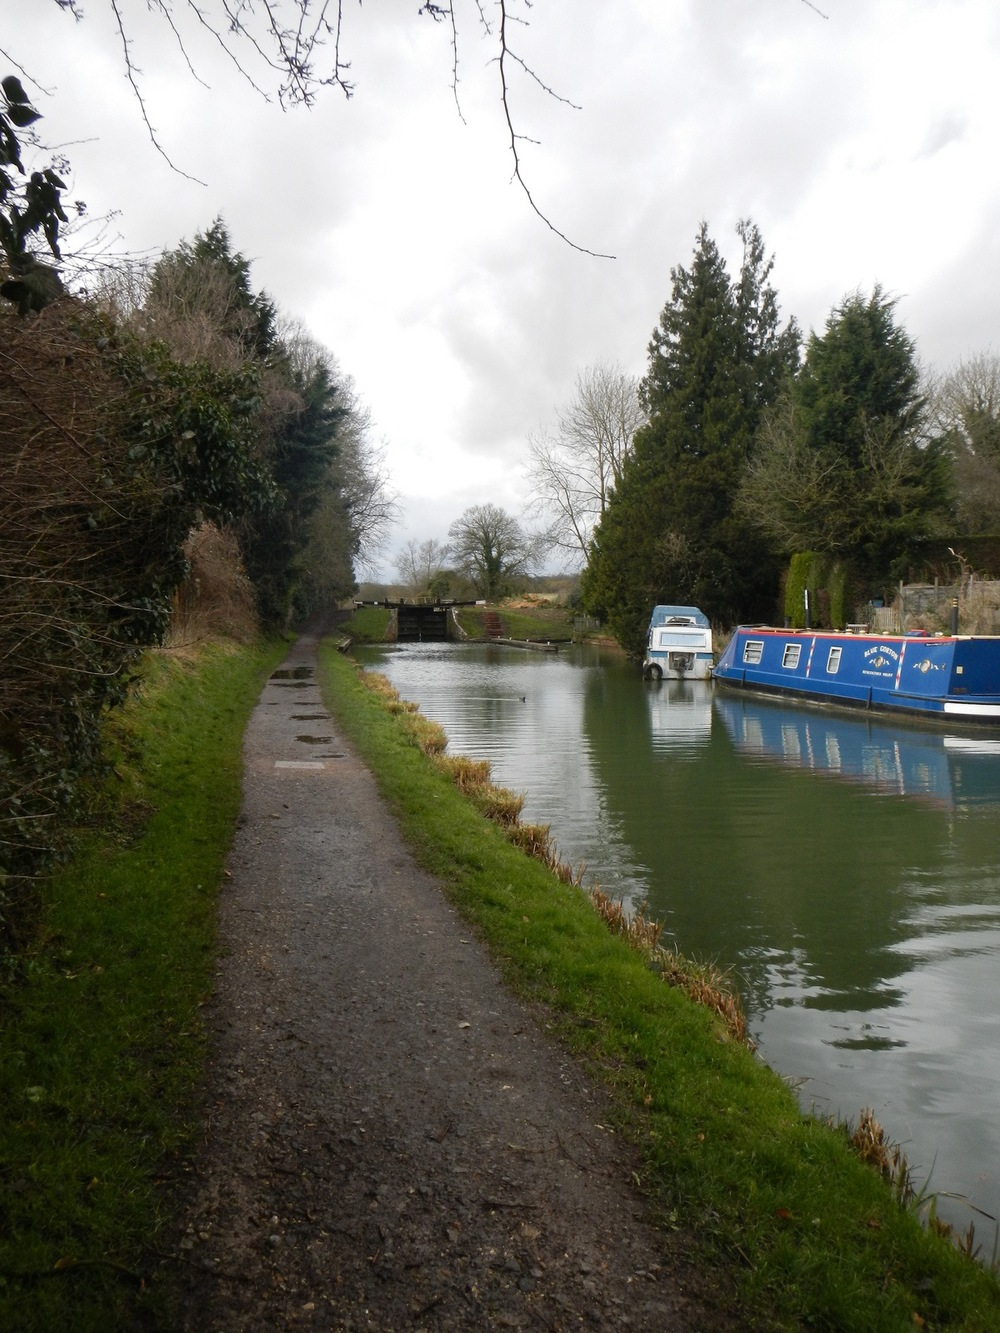 The walking path along the canal.